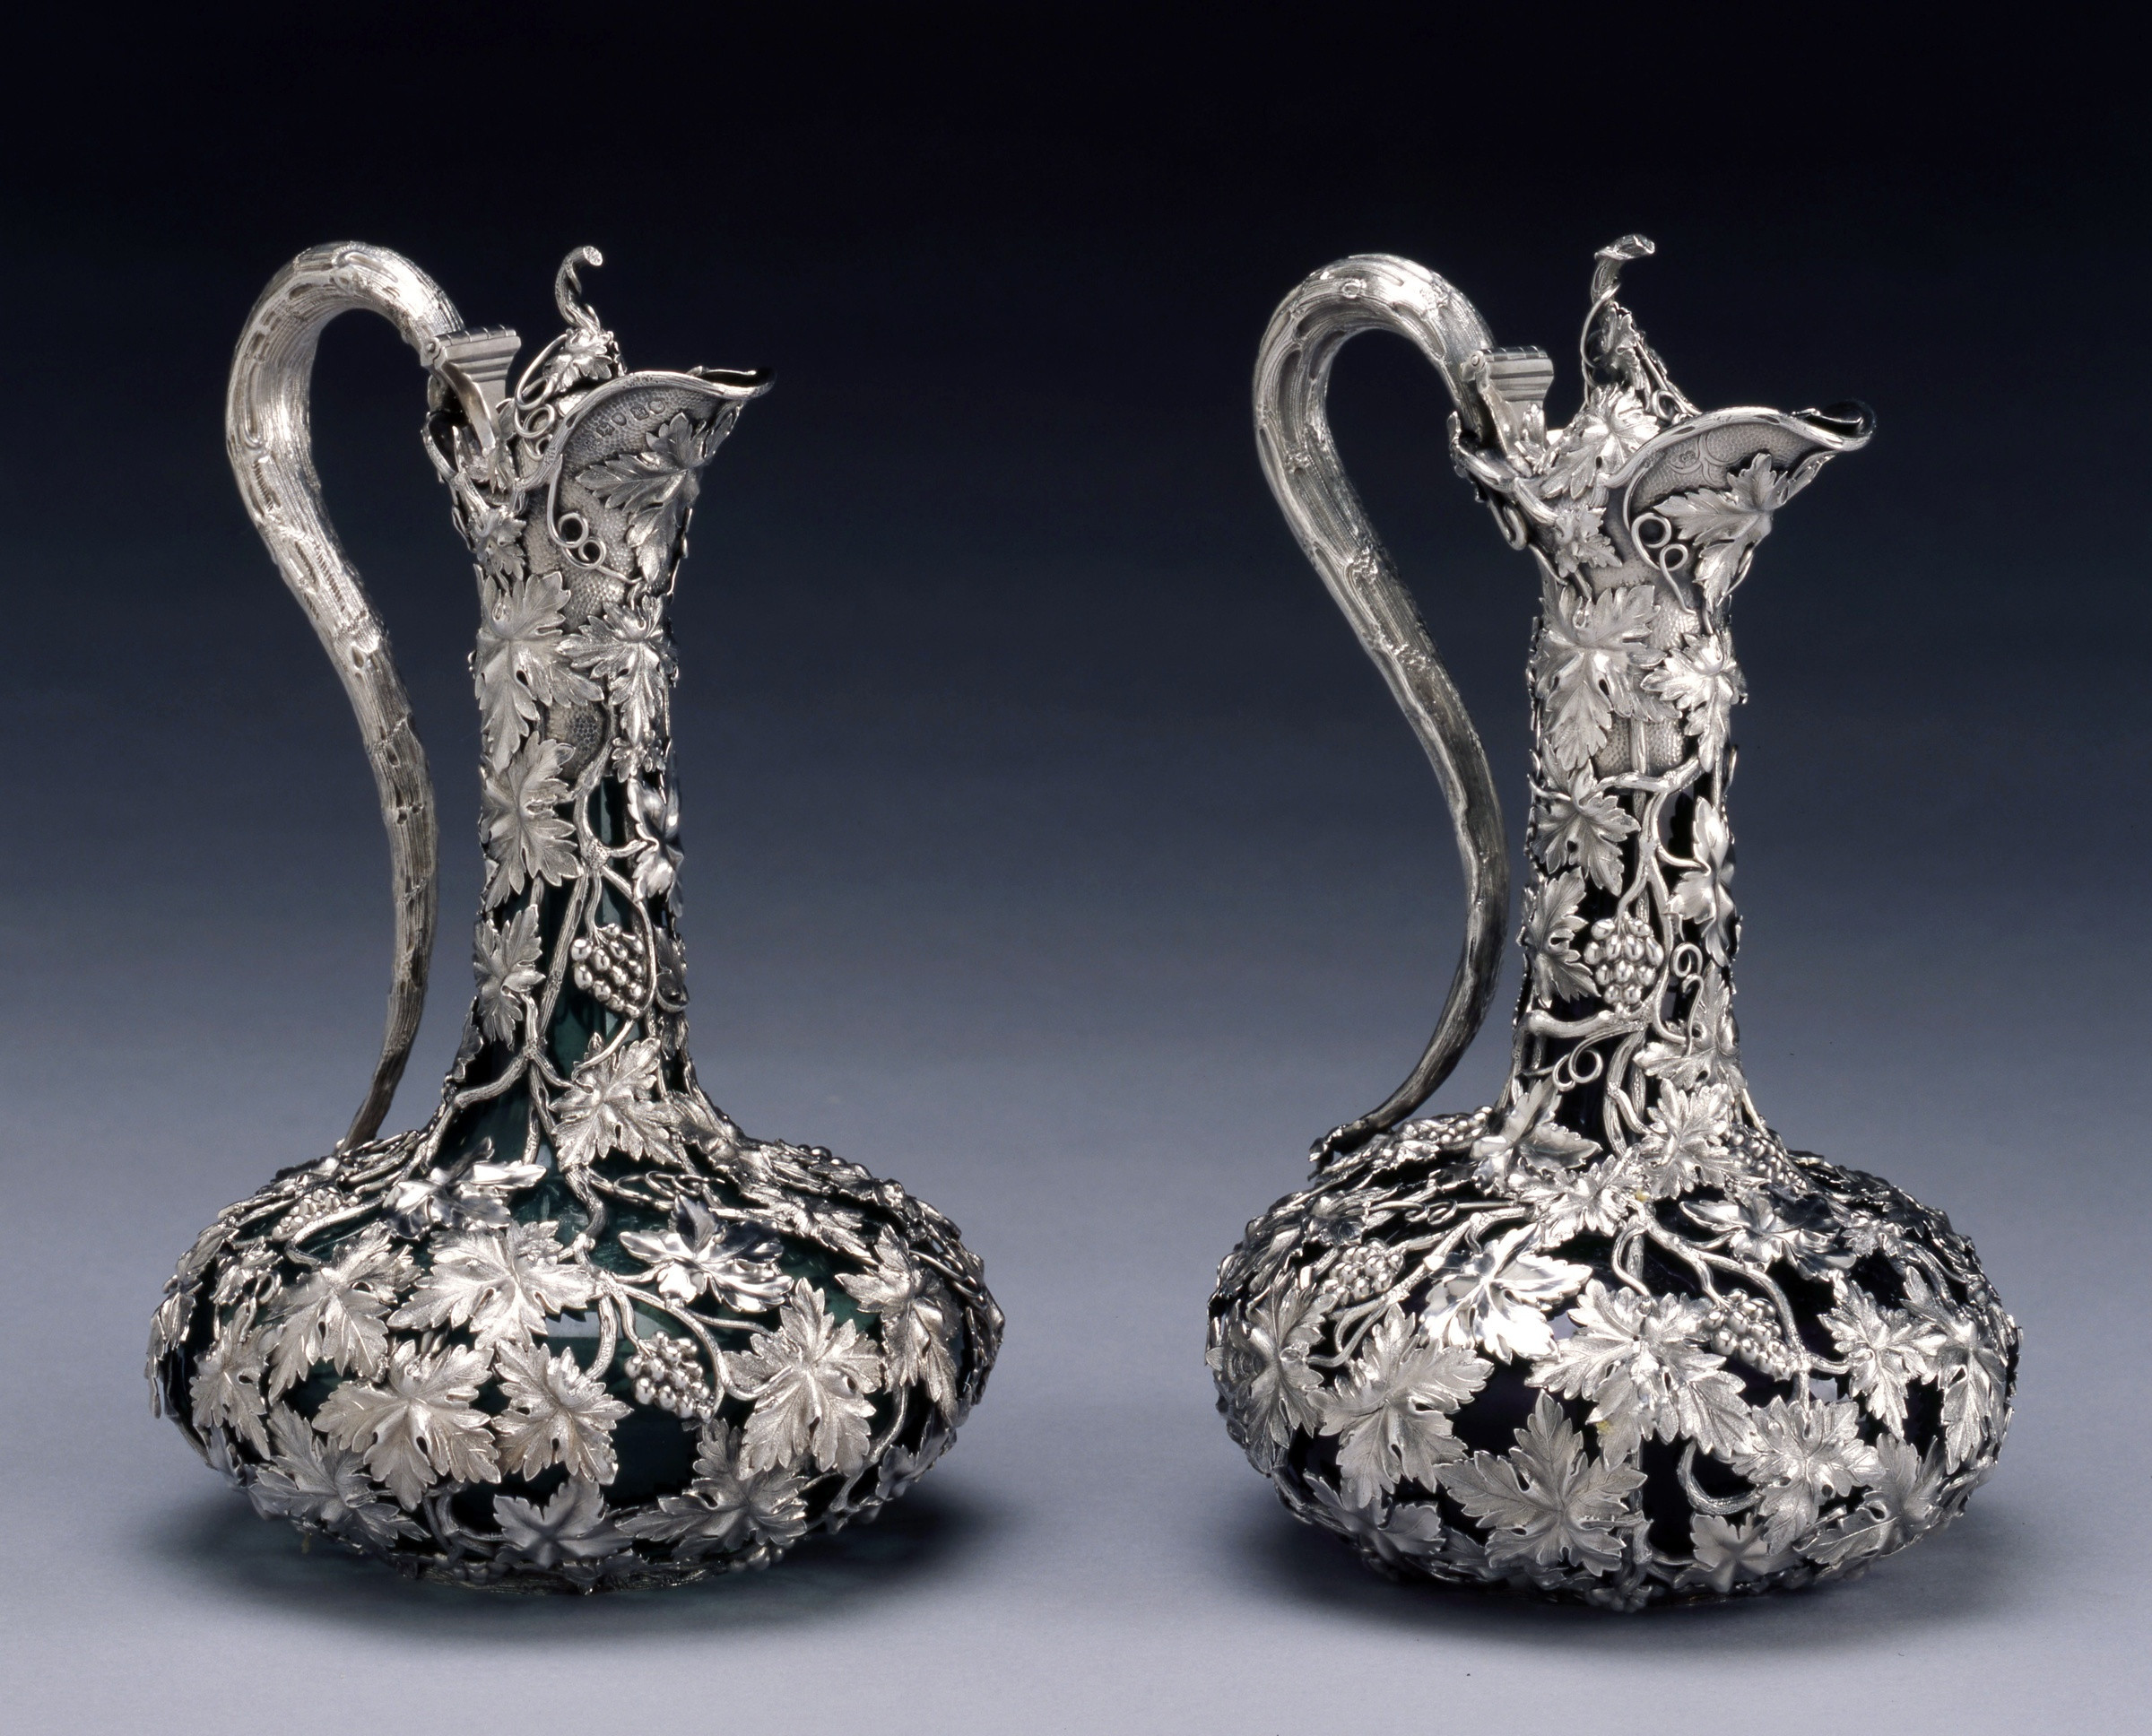 glass vase with handle of charles reily george storer a pair of victorian claret jugs by with a pair of victorian claret jugs by charles reily george storer